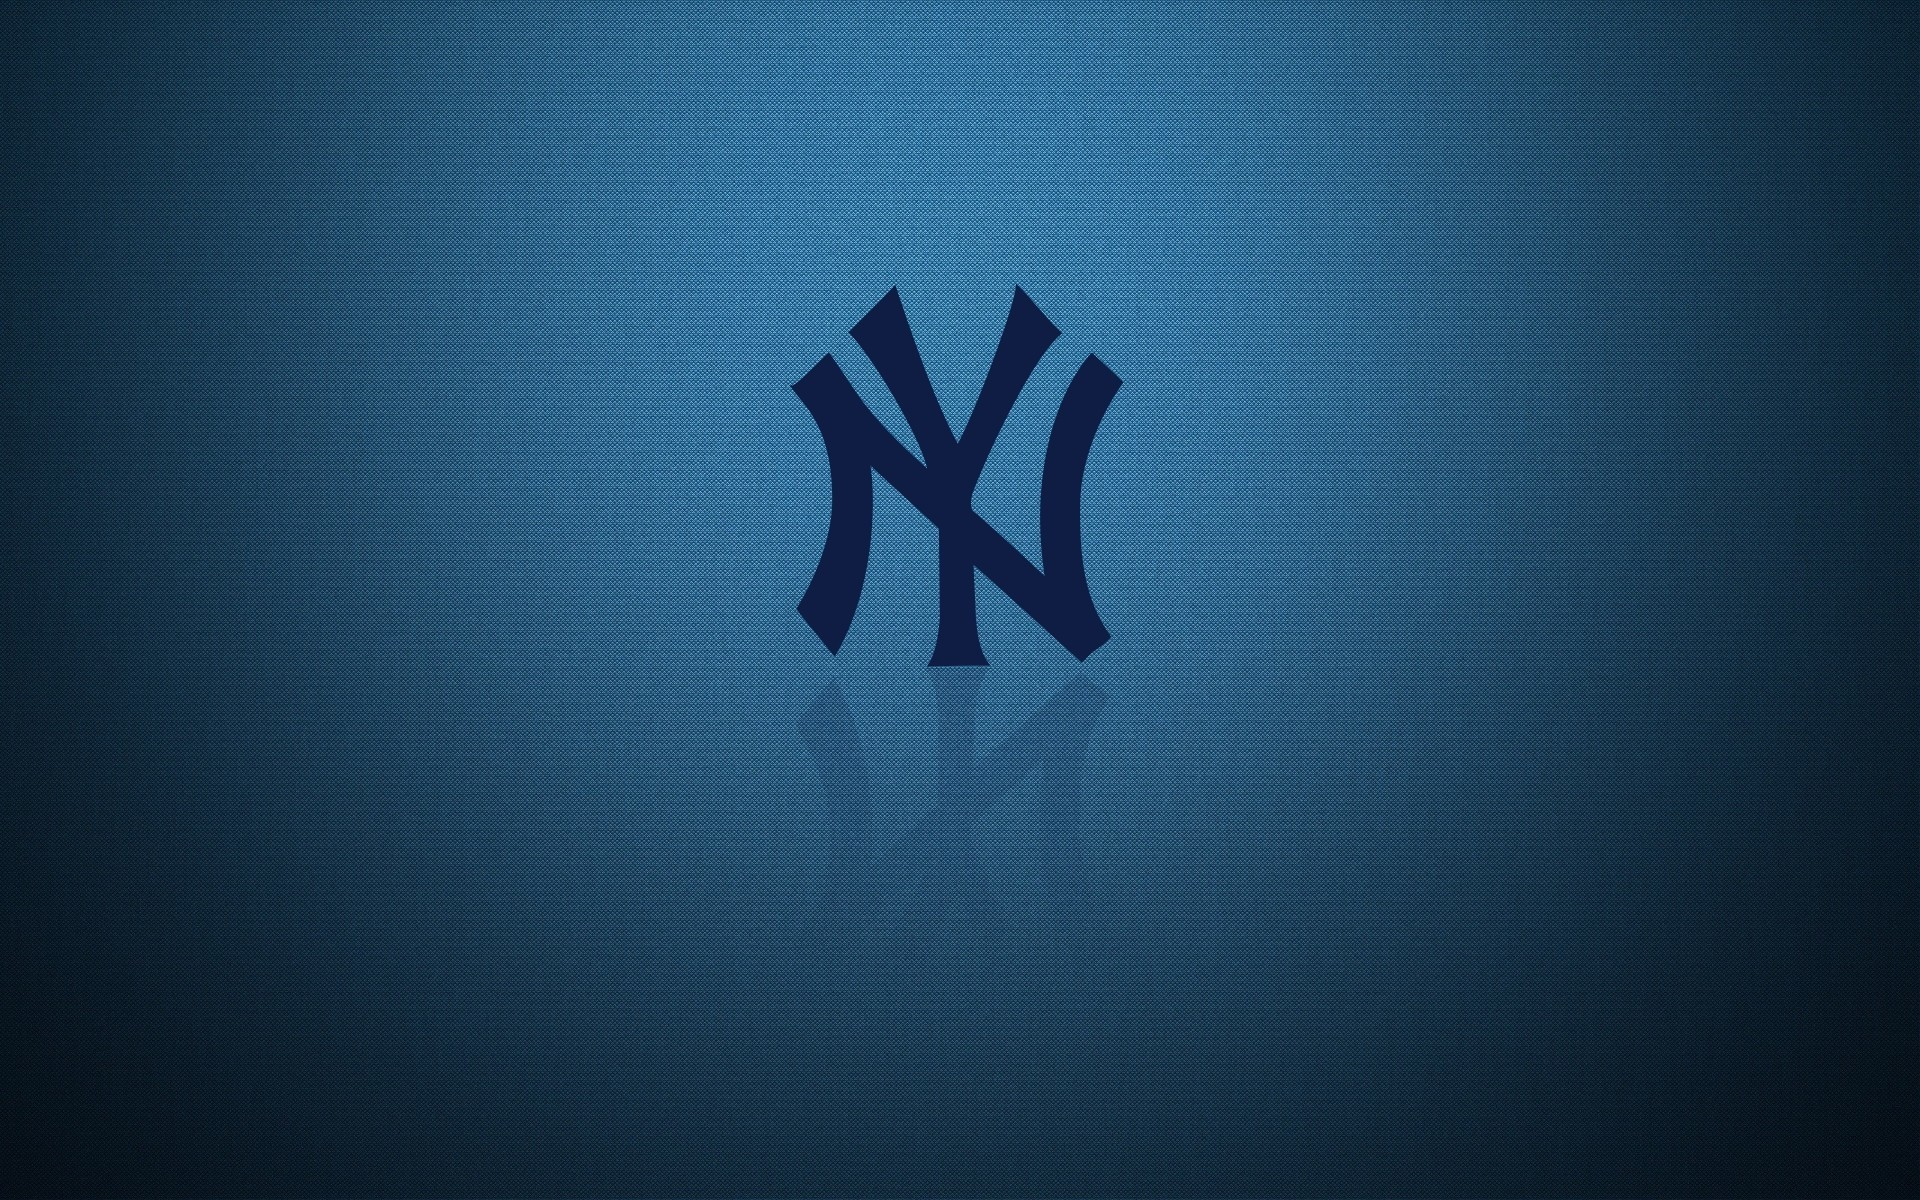 1920x1200 1920x1200 nyc wallpaper new york yankees baseball logo wallpaper new